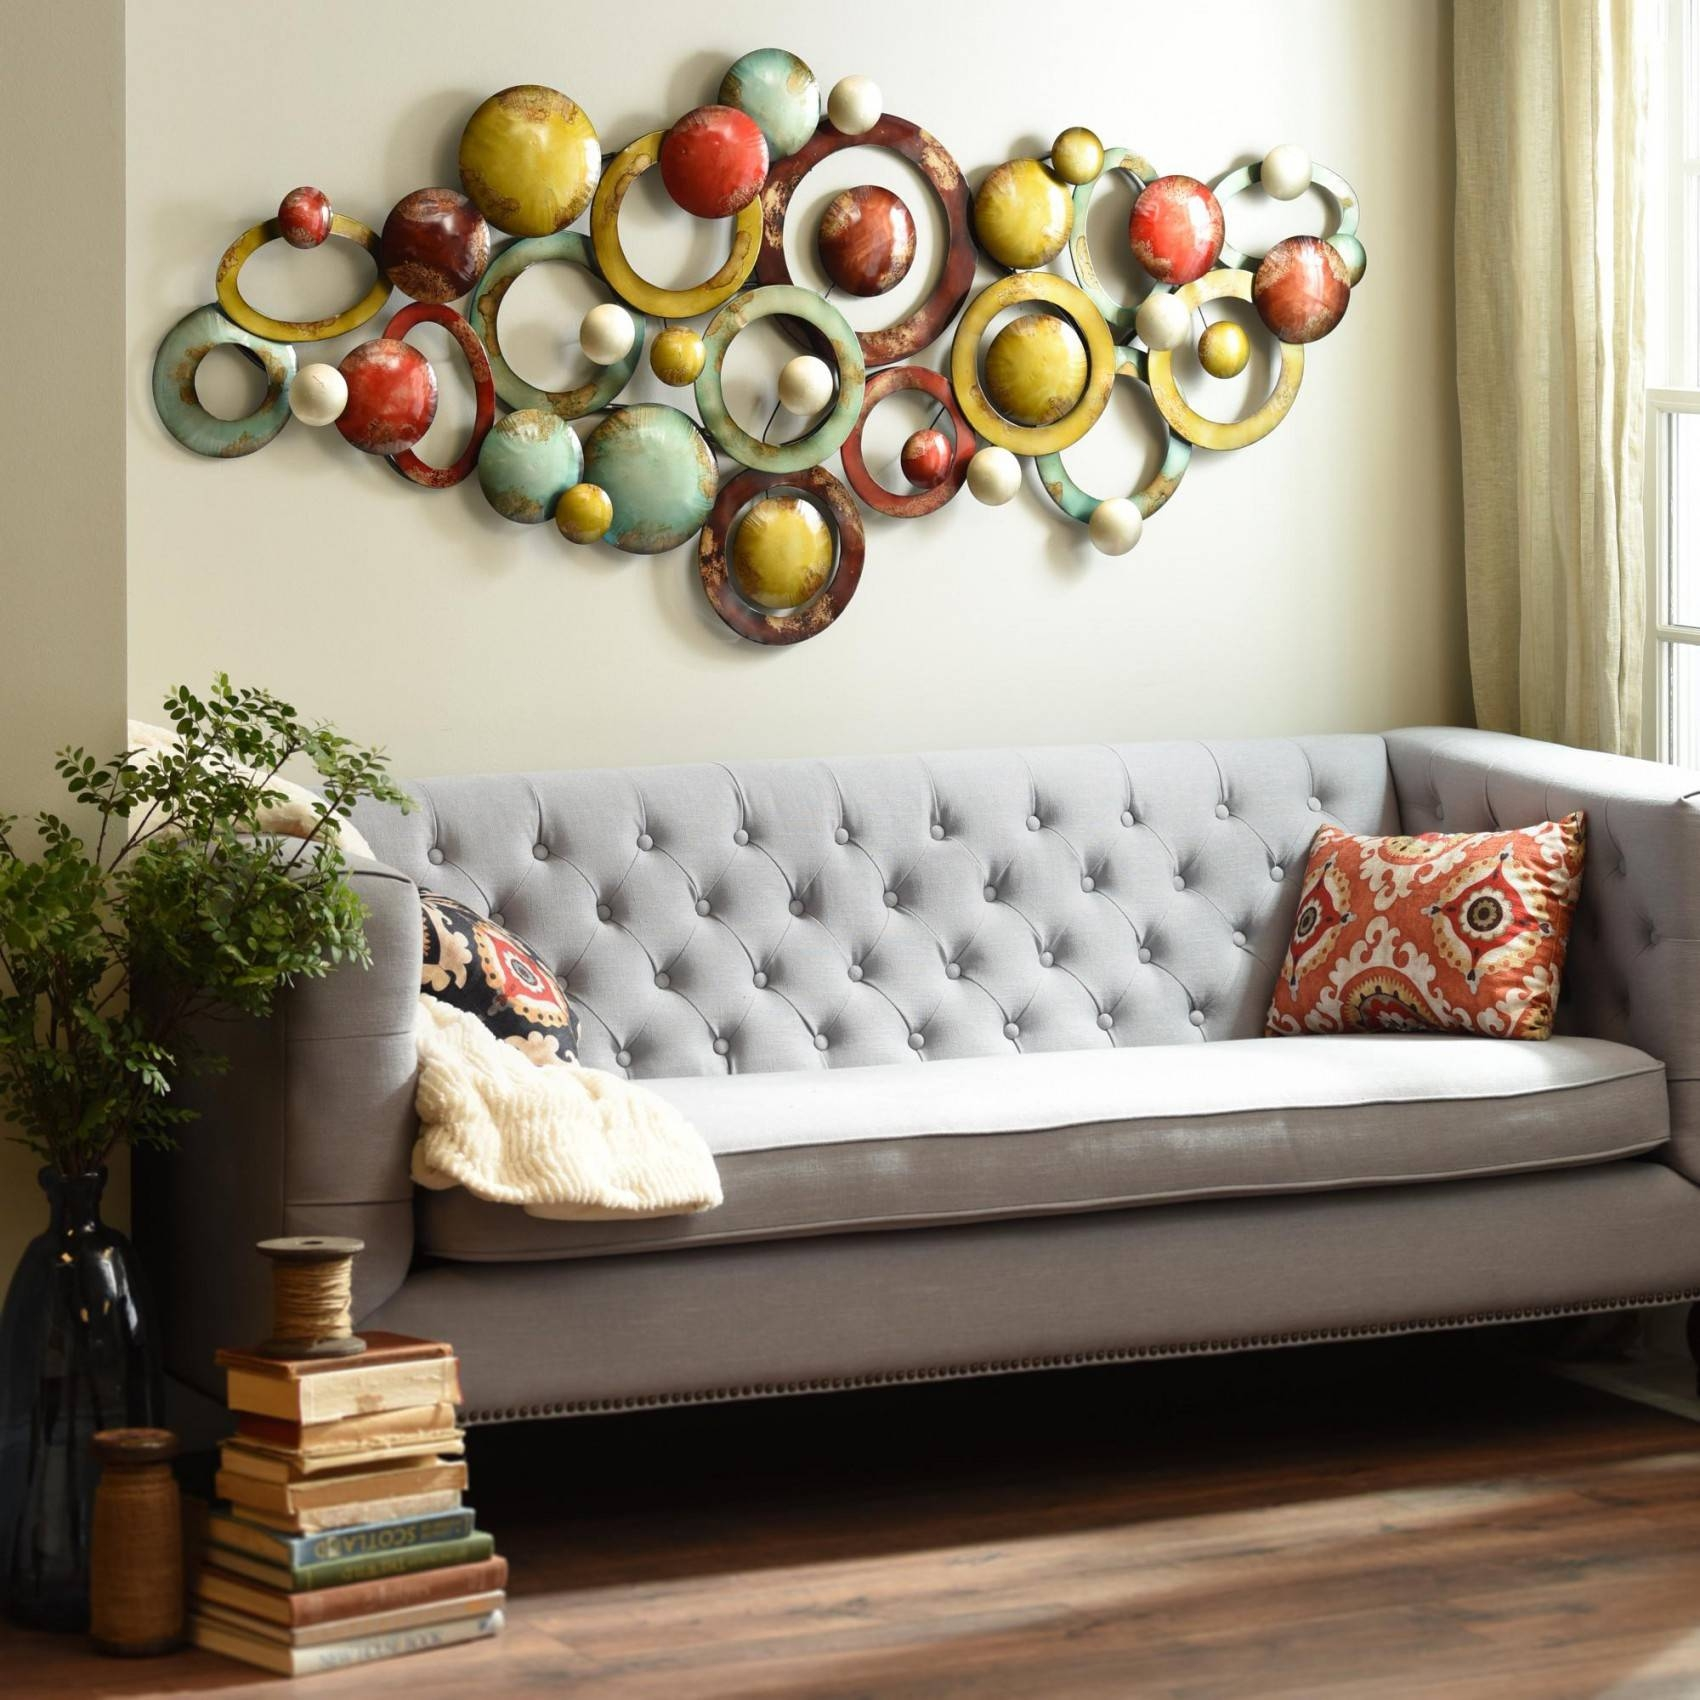 Living Room Metal Wall Art – Best Home Design Ideas Pertaining To Pertaining To Most Current Metal Wall Art For Living Room (View 2 of 20)